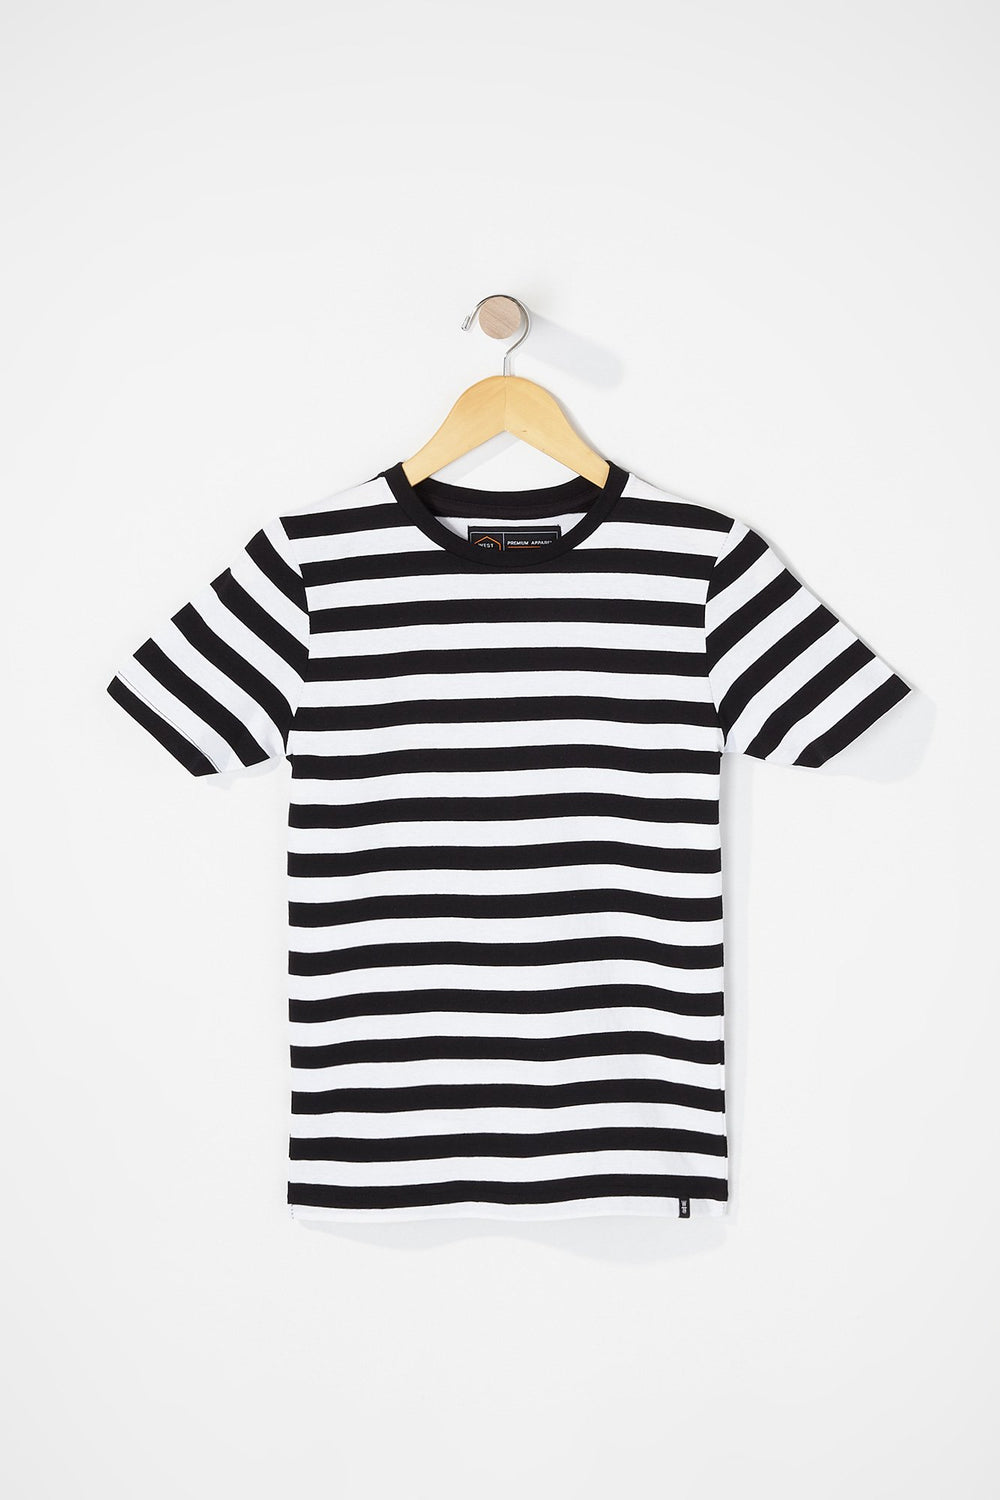 West49 Boys Striped T-Shirt White